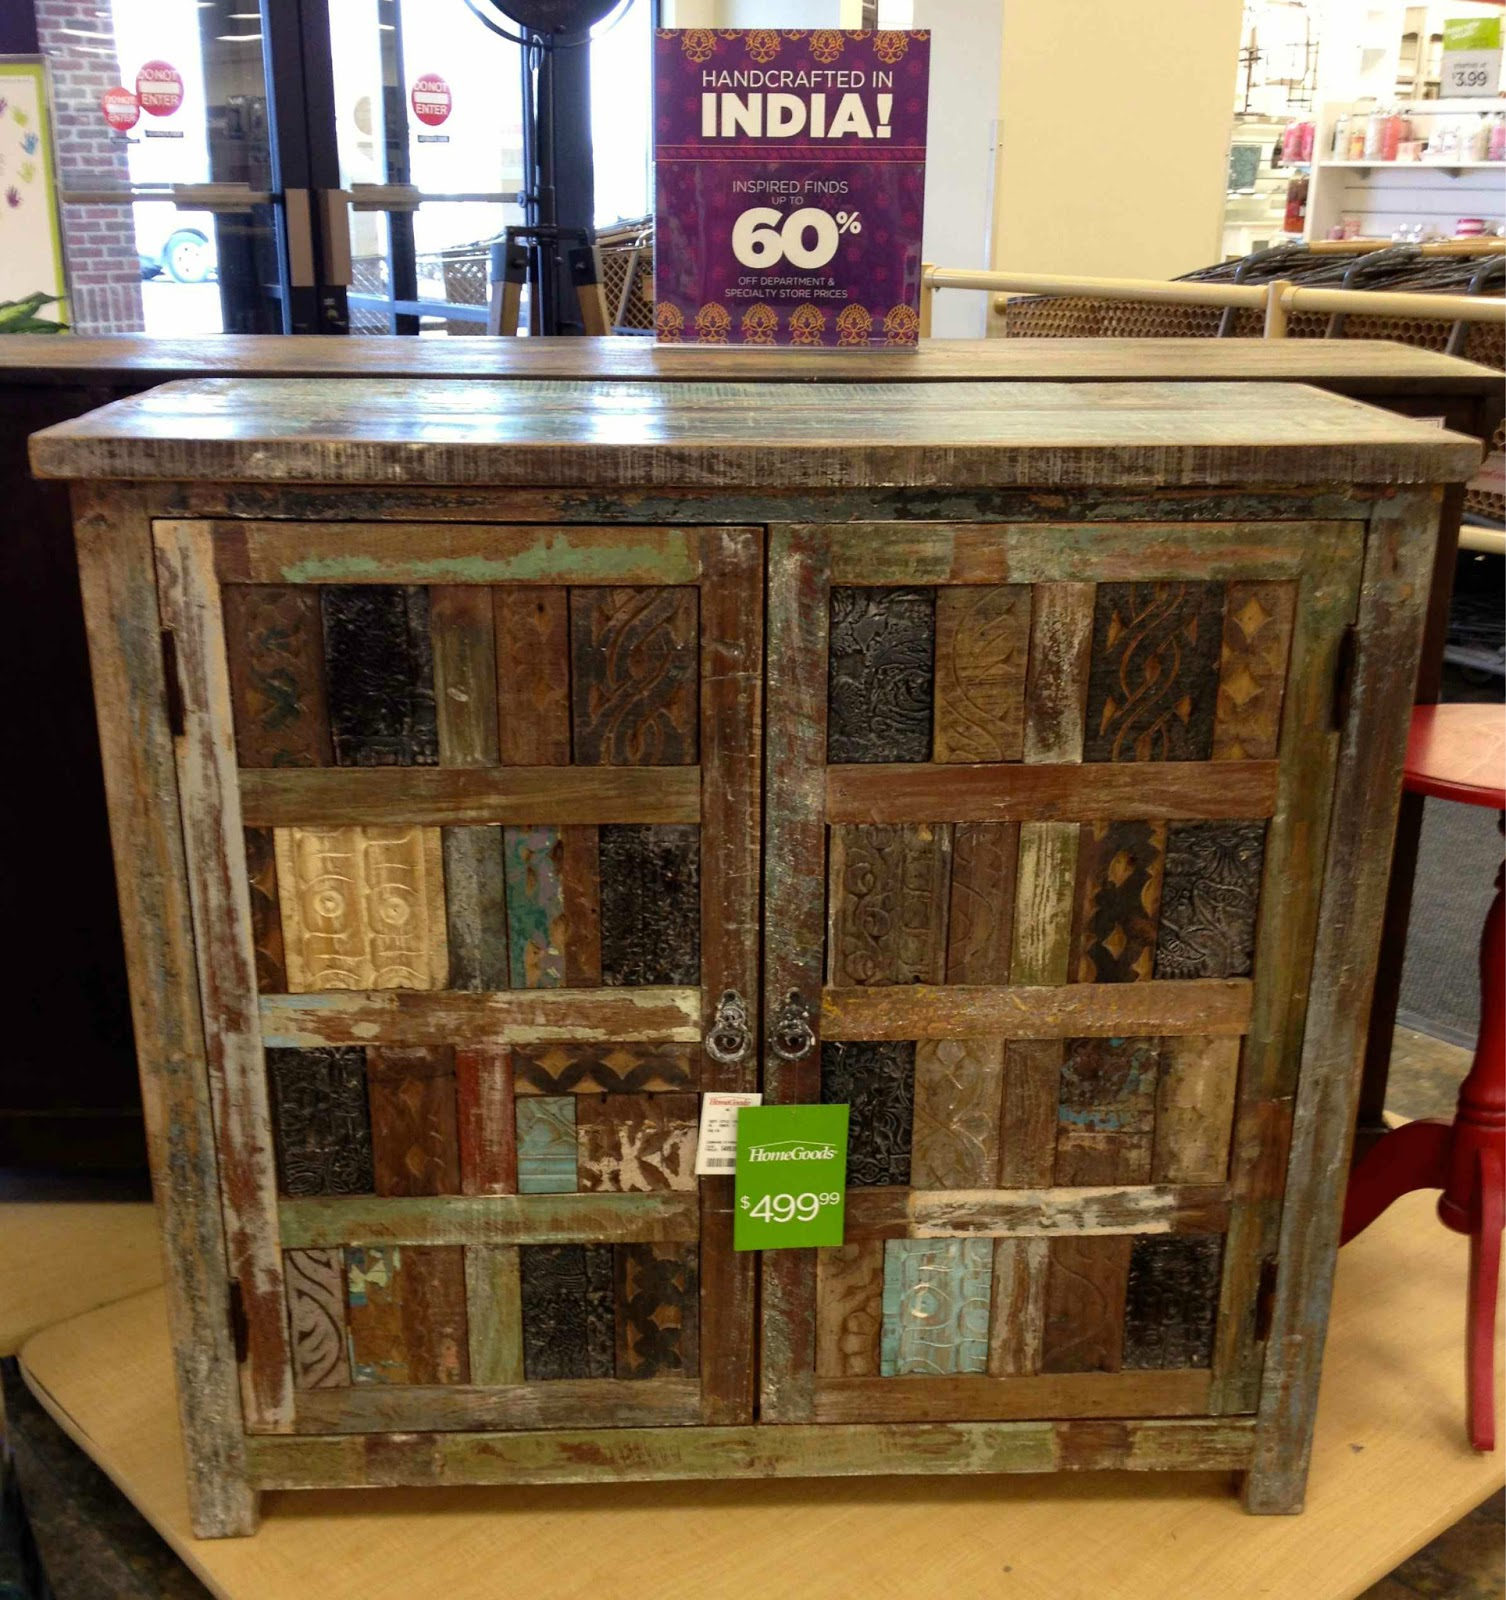 Chair Covers Home Goods Bamboo Folding Inspiration India At Homegoods Driven By Decor